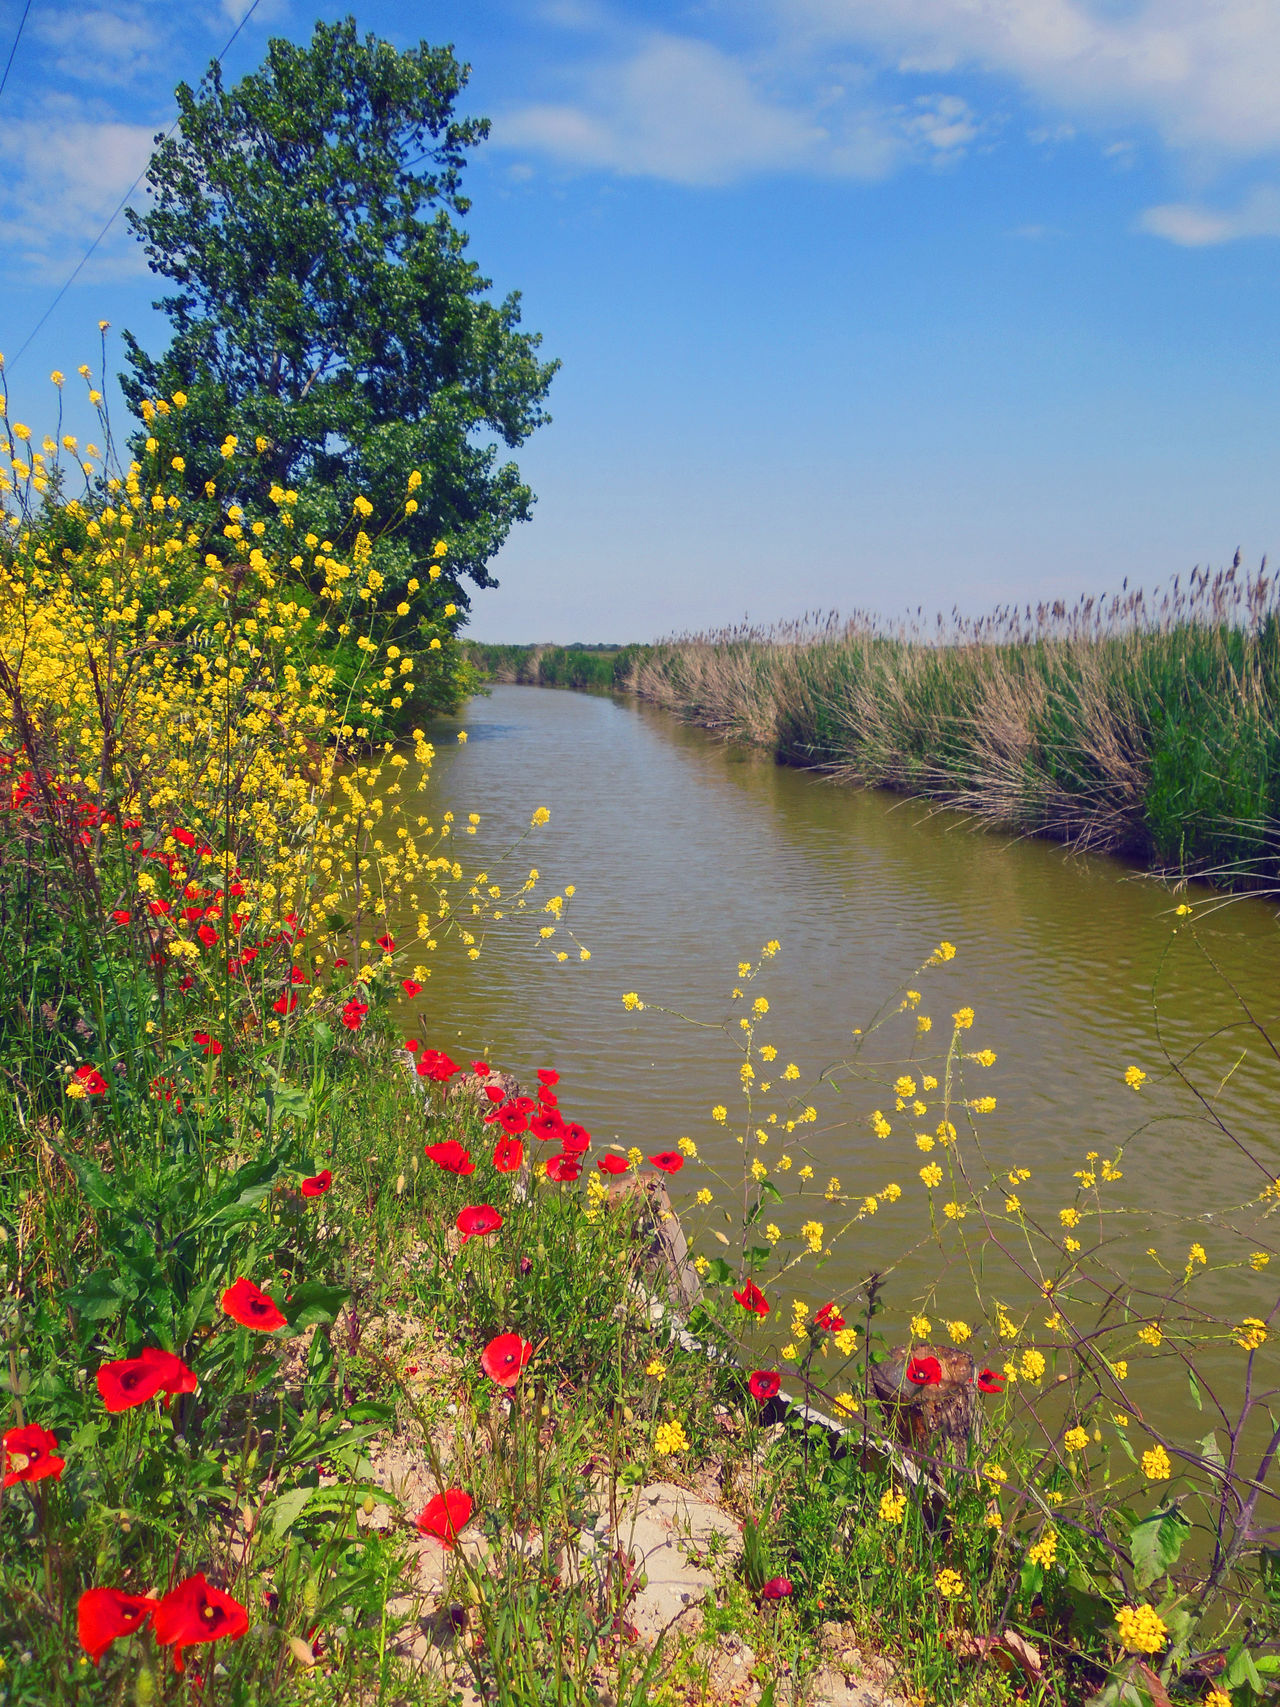 Beauty In Nature Blue Channel Flower France Grass Growth Horizon Over Water Multi Colored Nature Papaver Plant Poppy Poppy Flowers Red Flower Riverscape Sky Tranquil Scene Travel Destinations Traveling Travelling Tree Water Yellow Flower